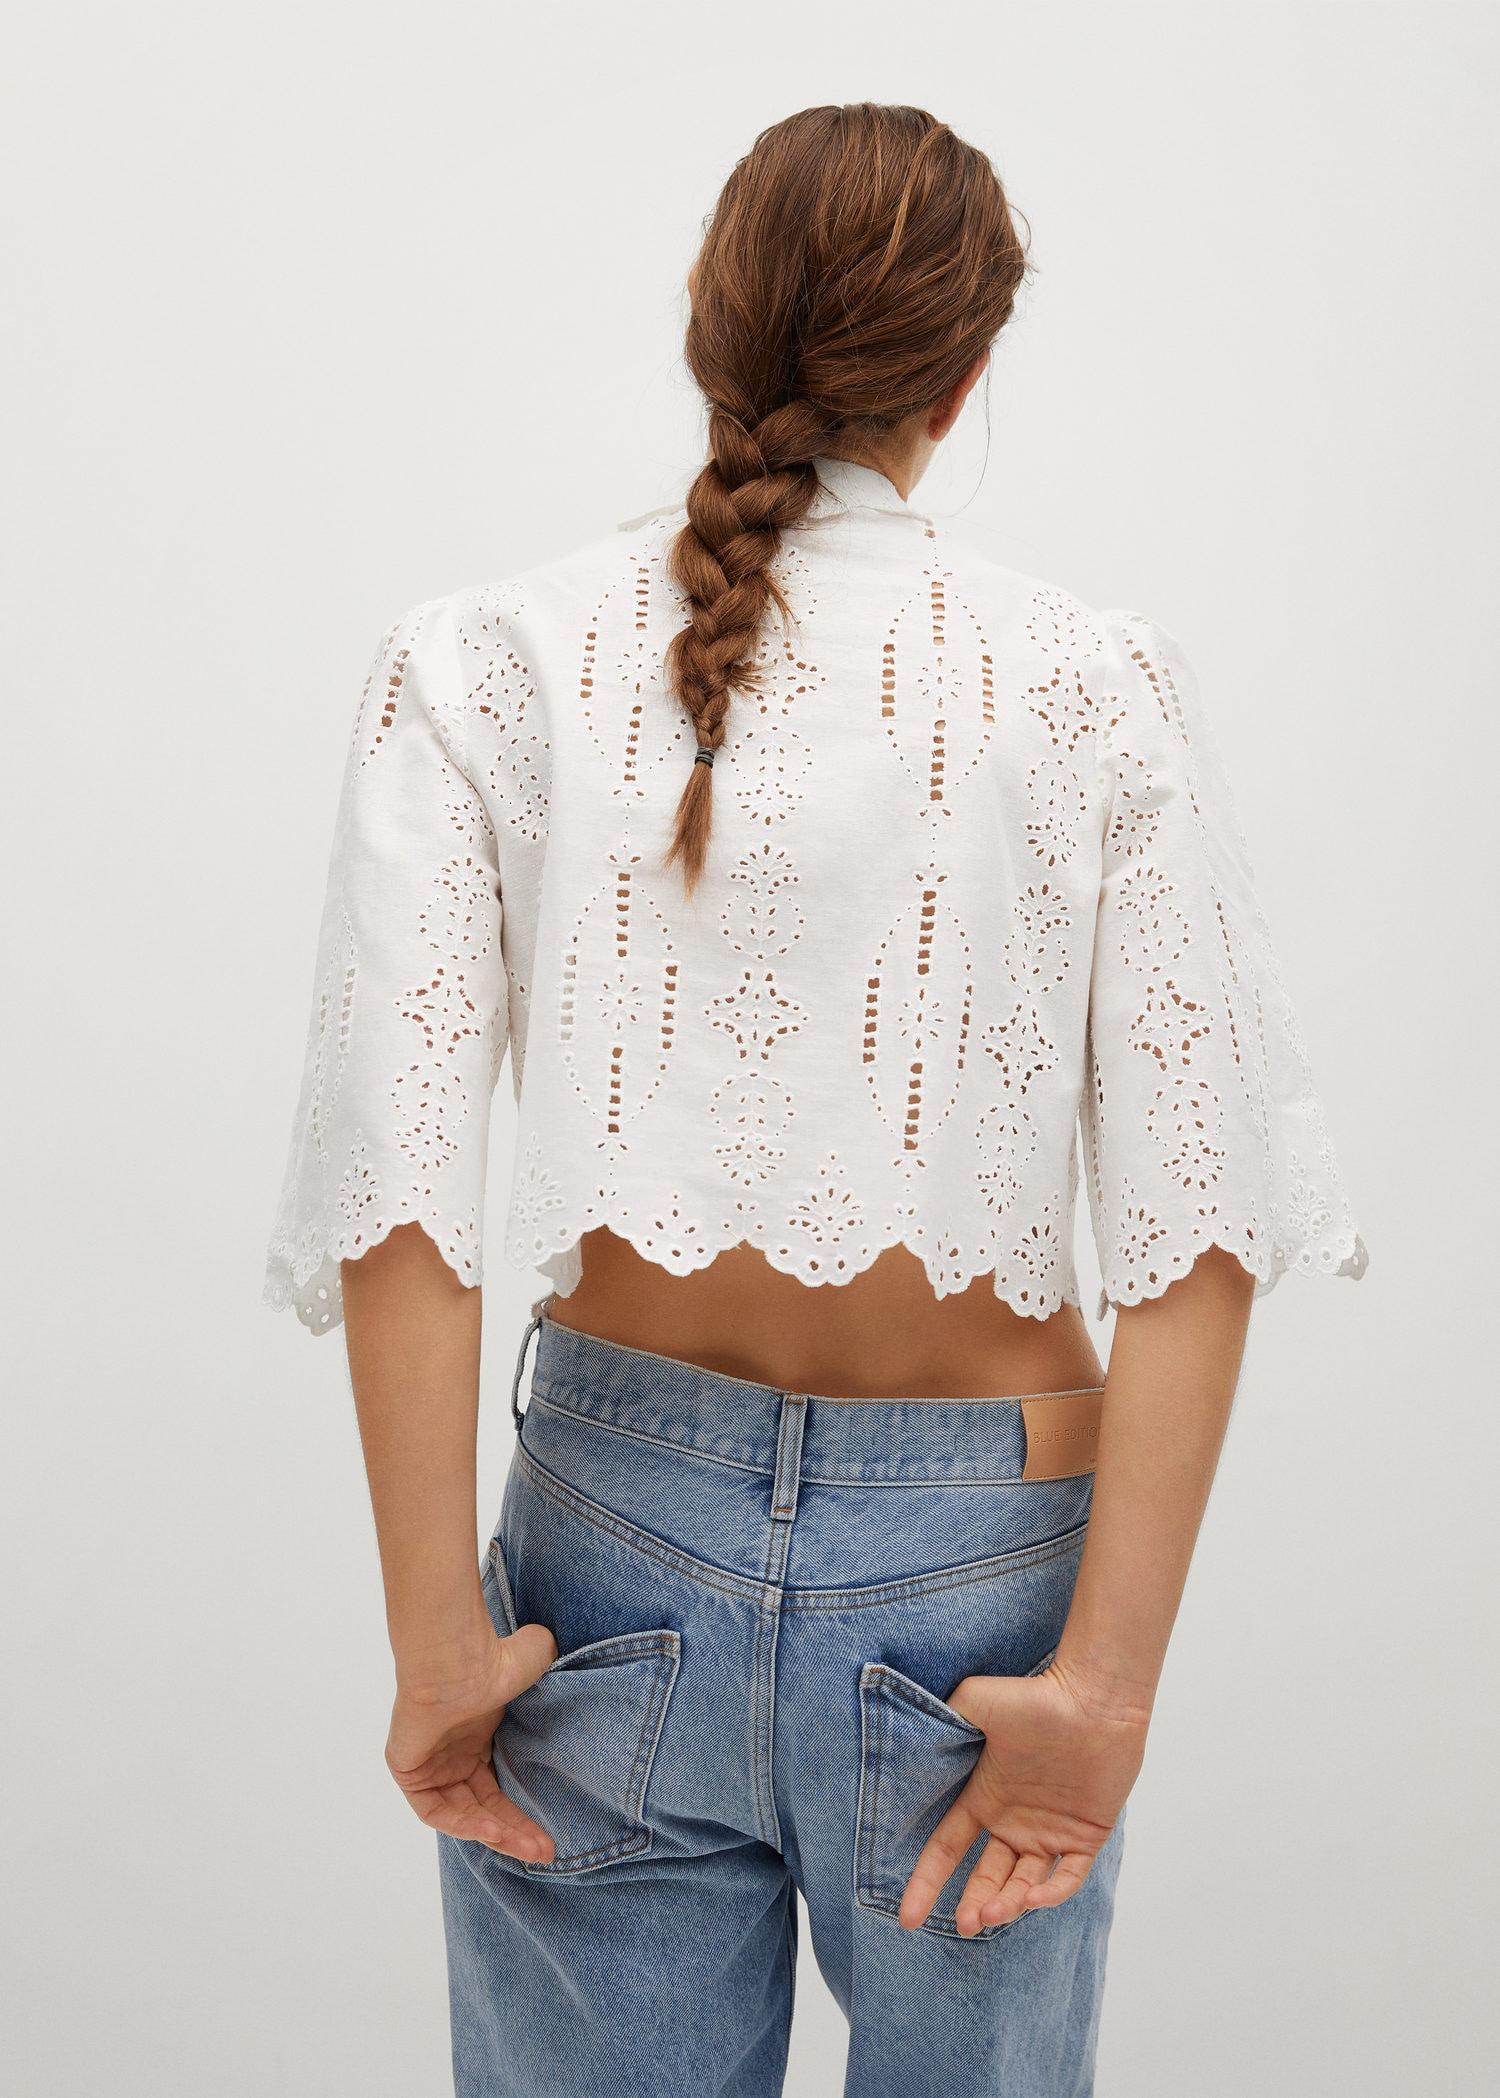 Swiss embroidery linen blouse 2